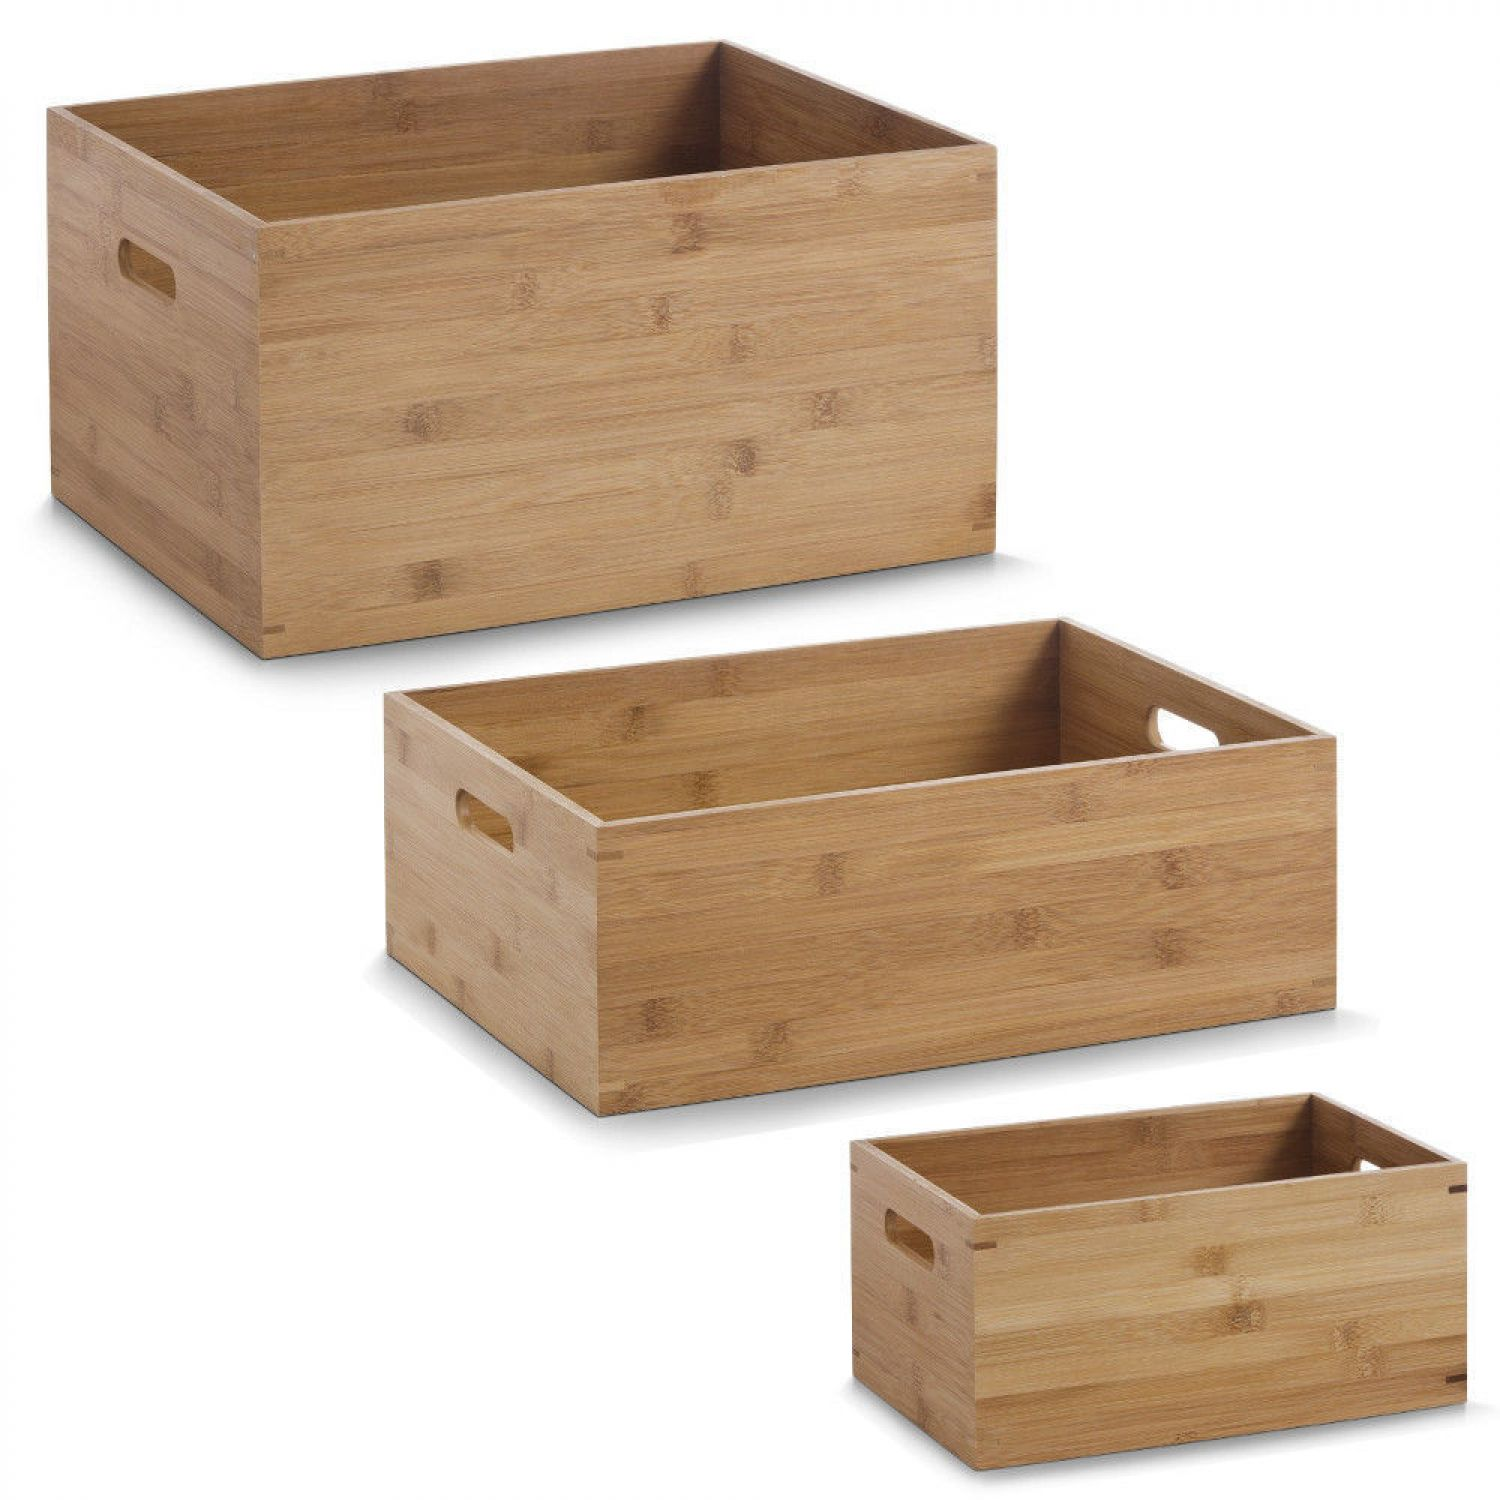 allzweckkiste bambus holz kiste holz box spielzeugbox box kiste gr e w hlbar ebay. Black Bedroom Furniture Sets. Home Design Ideas